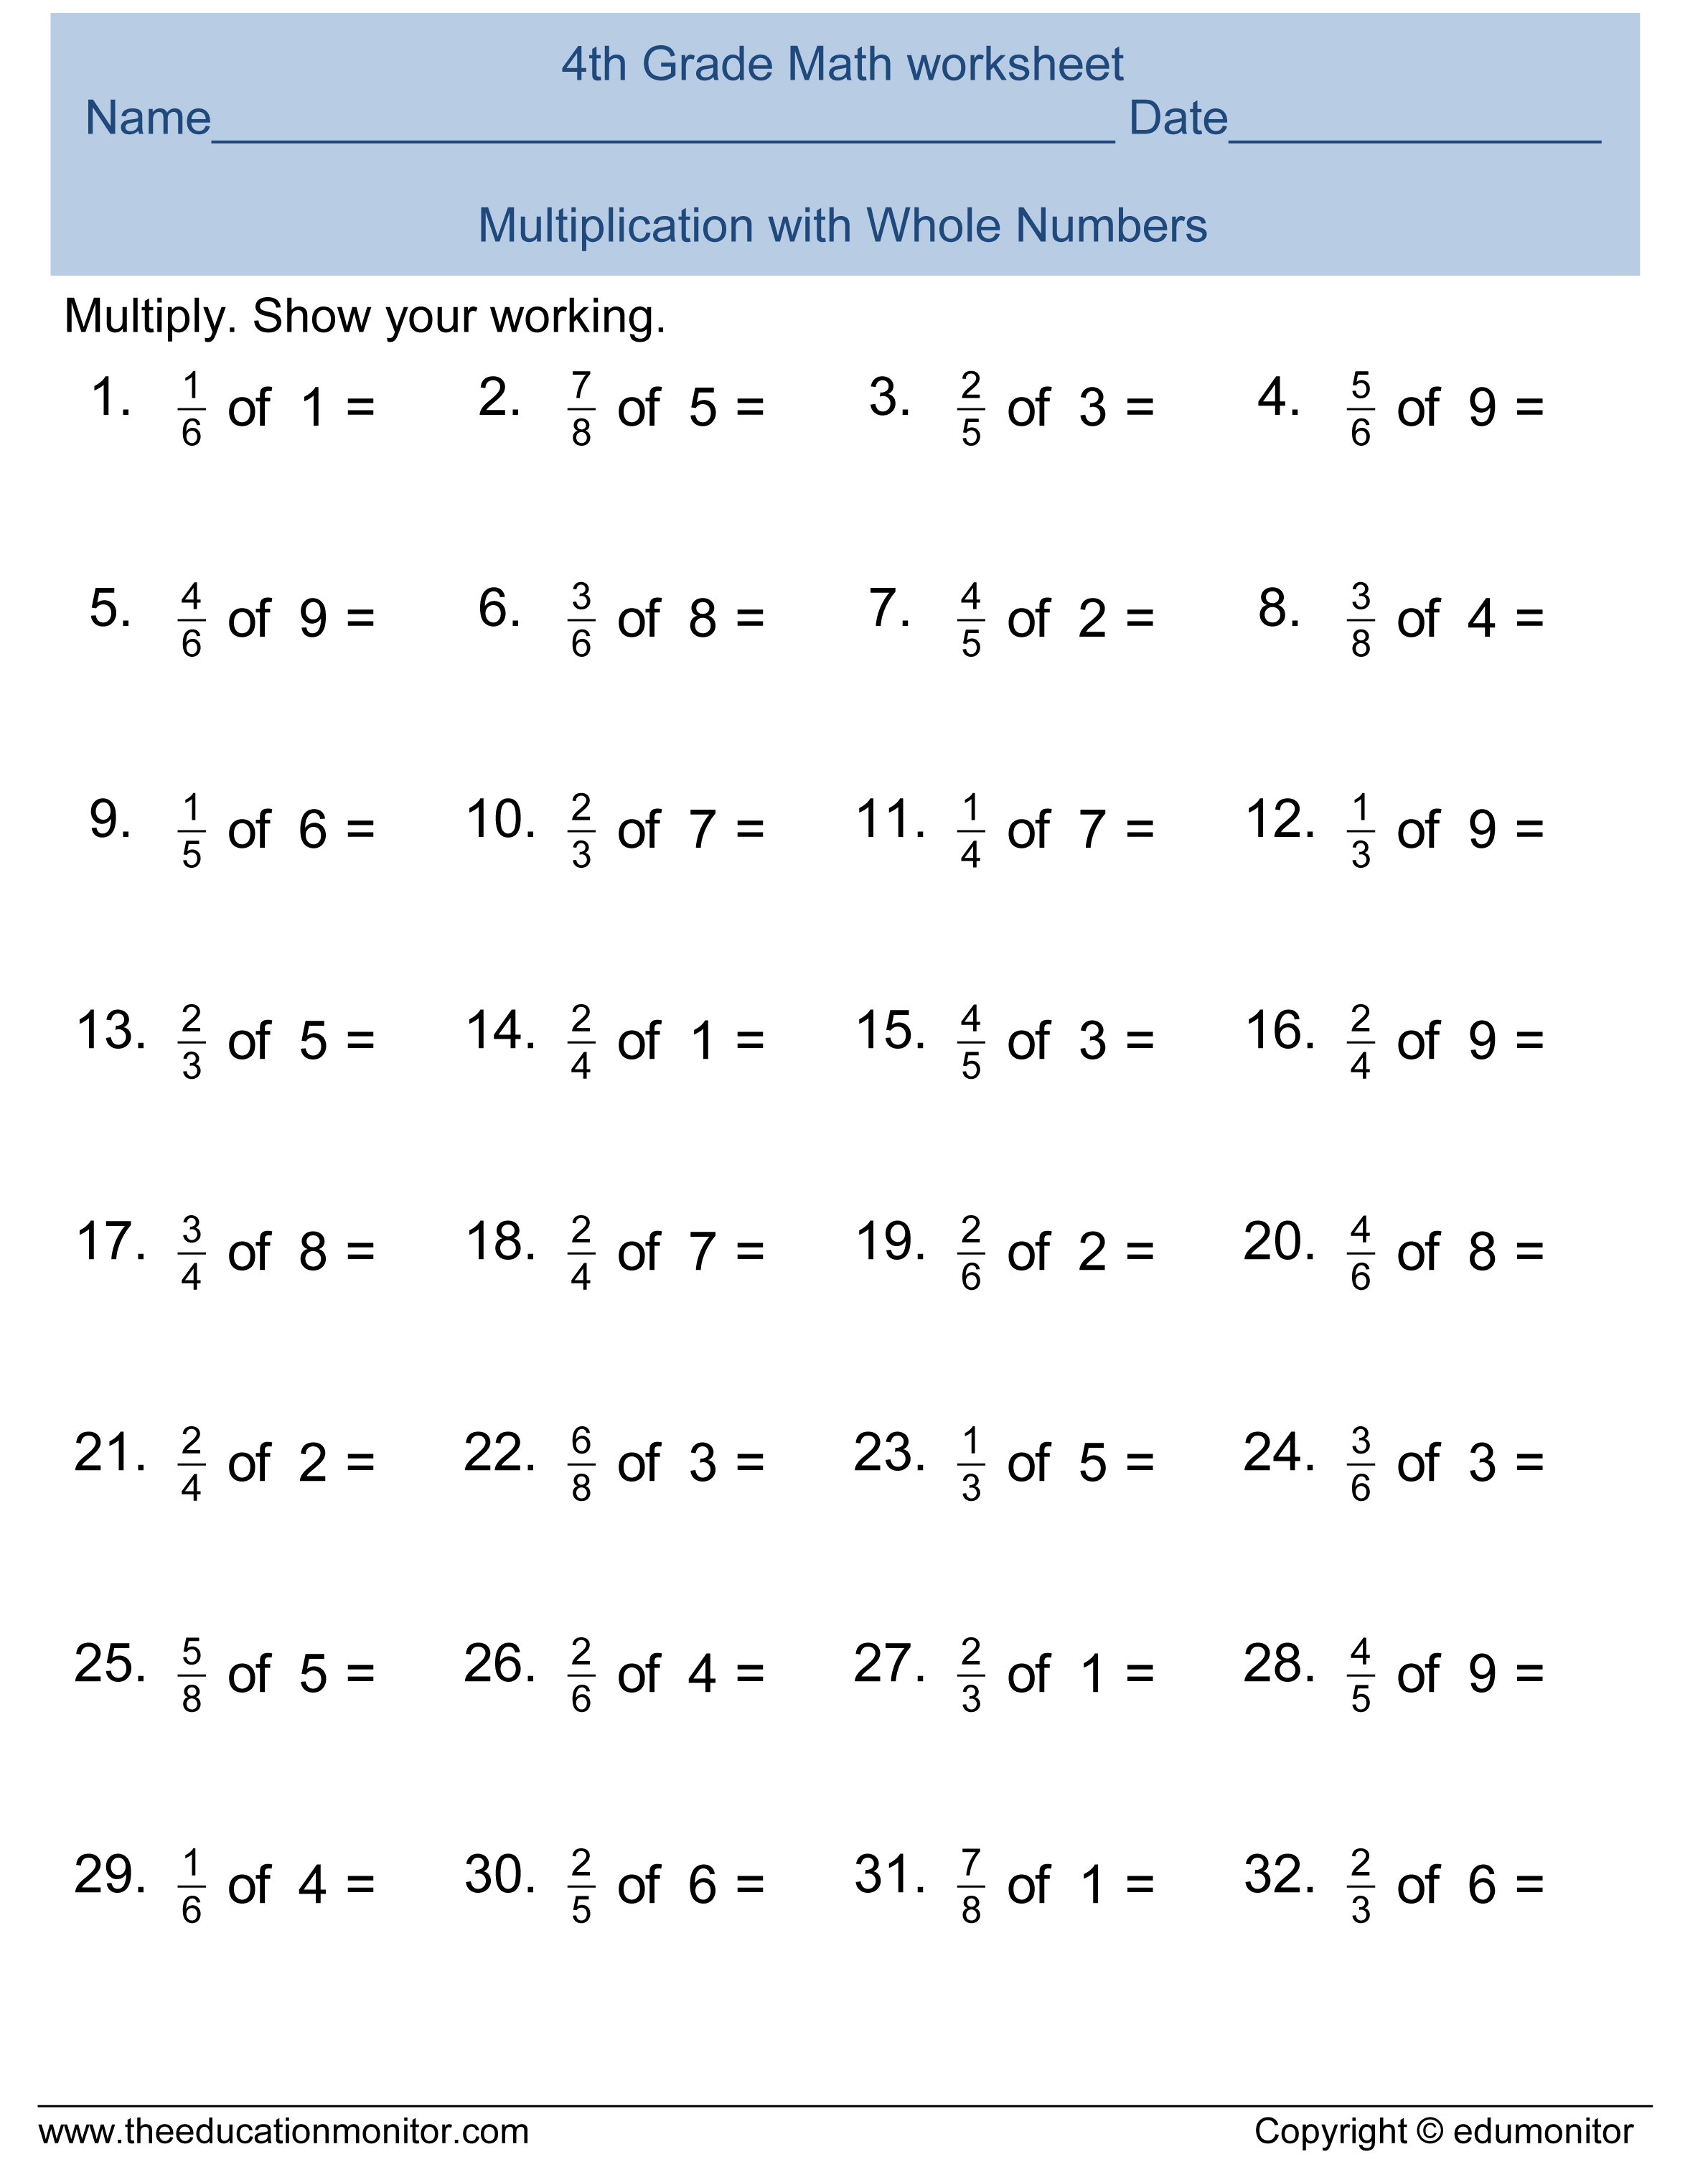 Free Printable Worksheets for 4th Grade – Year 7 Fractions Worksheets